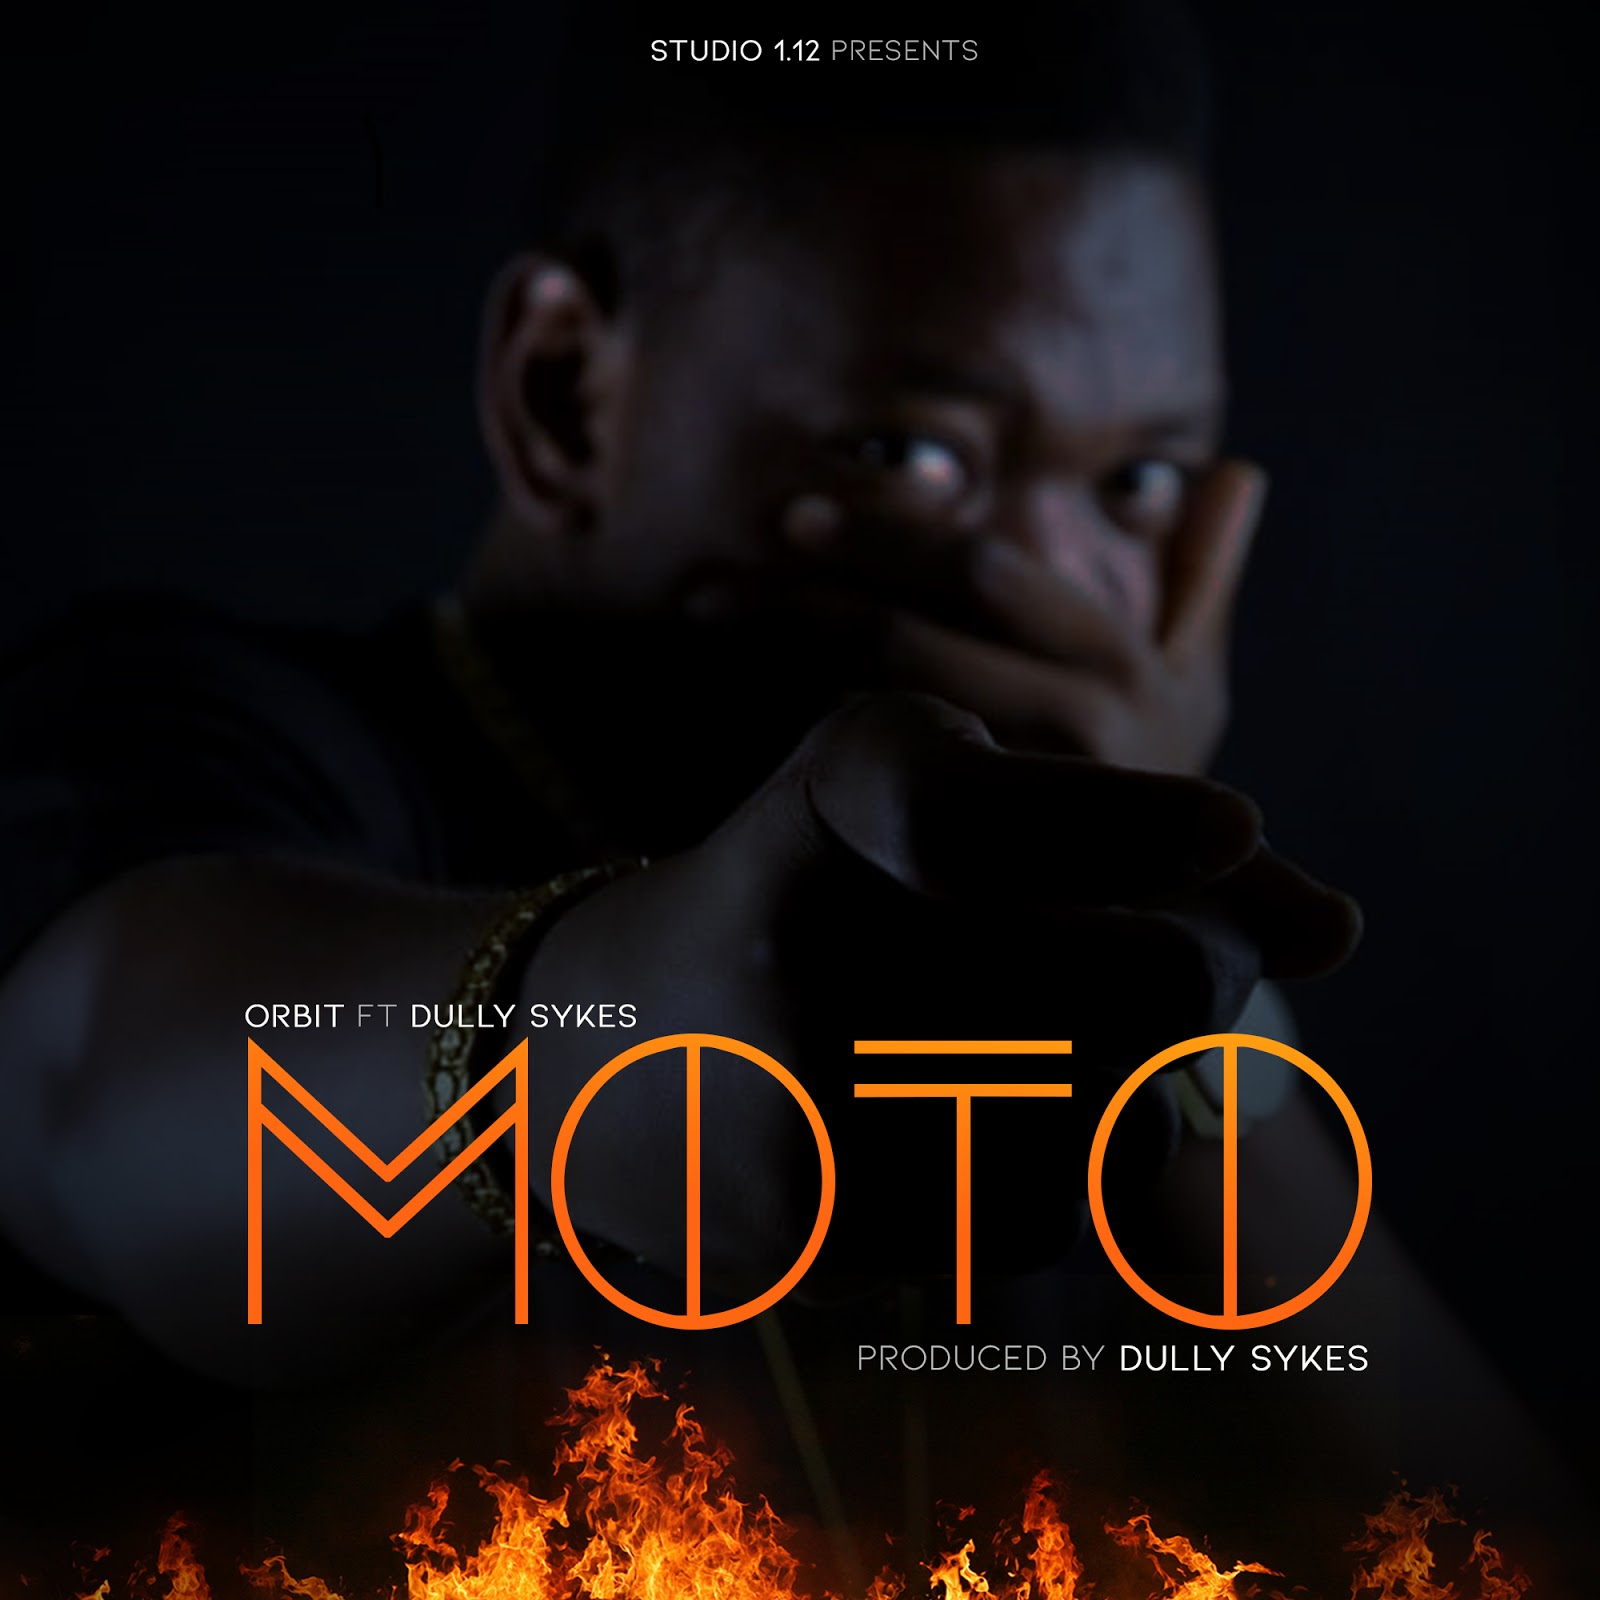 Download new audio: Moto - Orbit Ft Dully Sykes | mp3